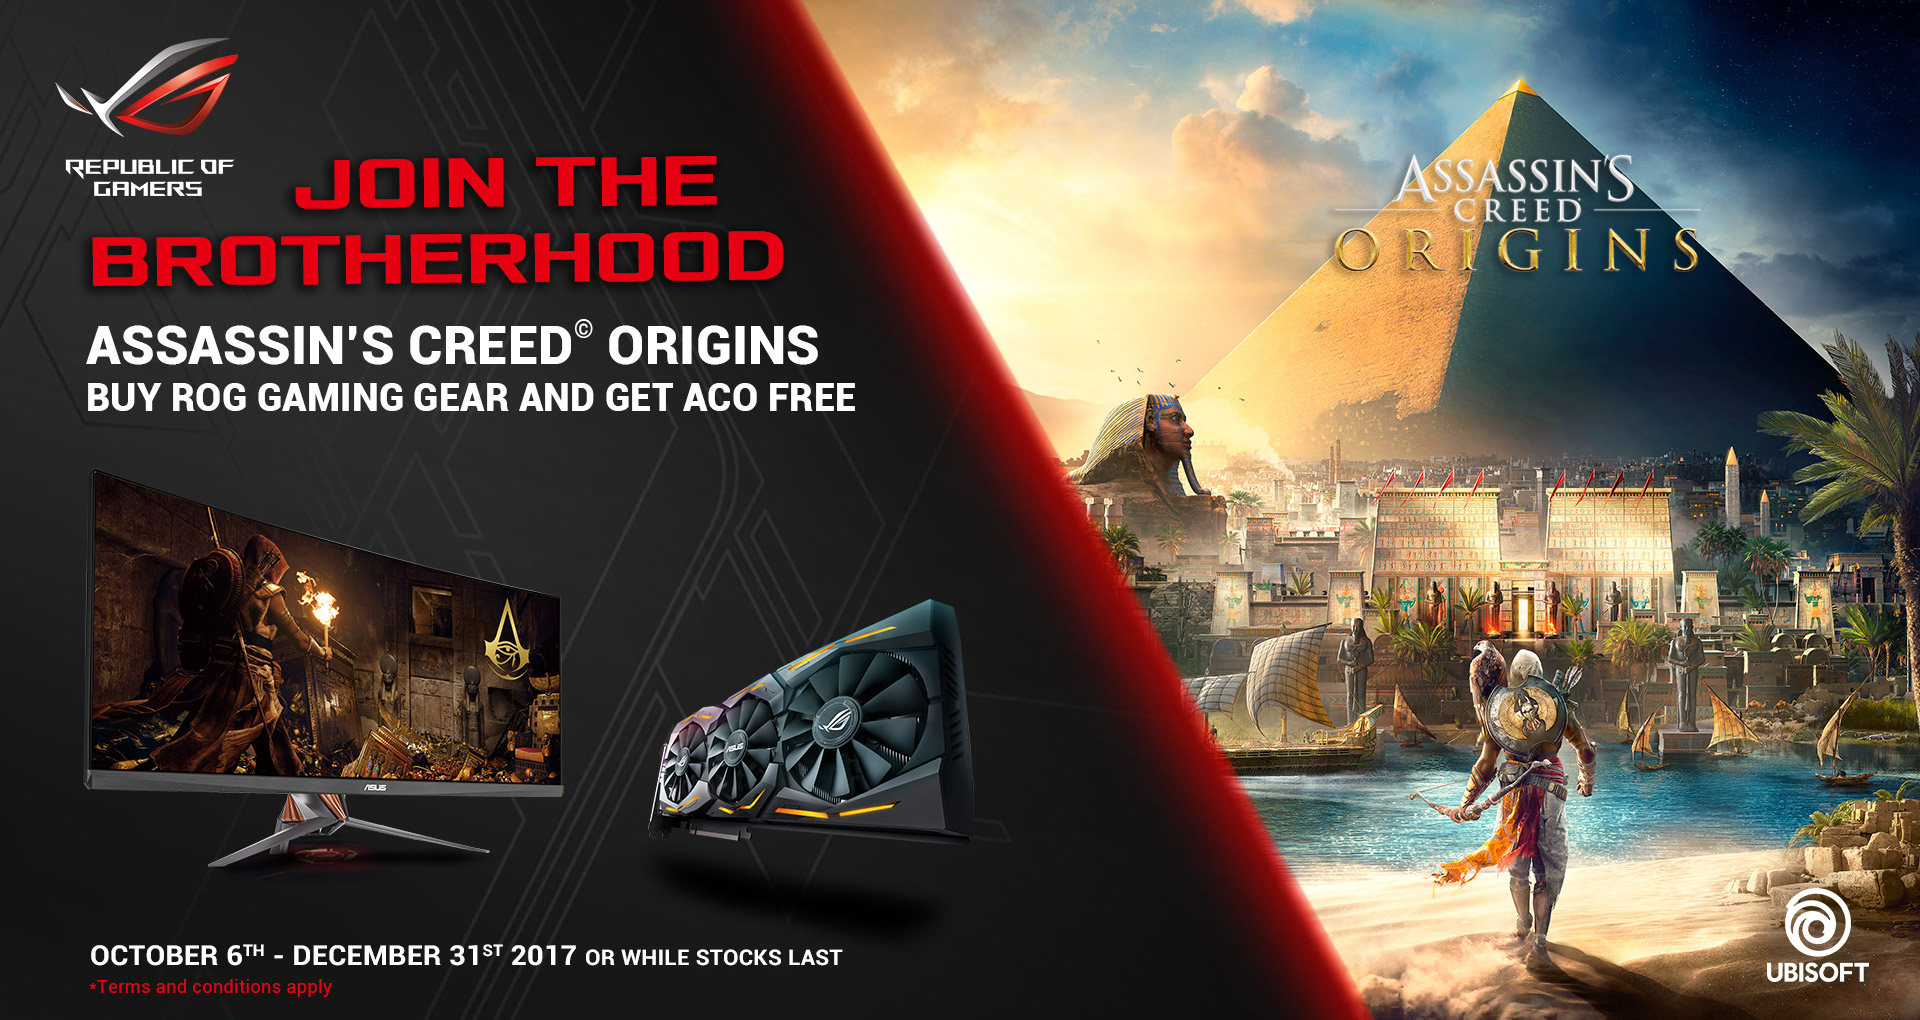 Asssassins Creed Origins Promotion